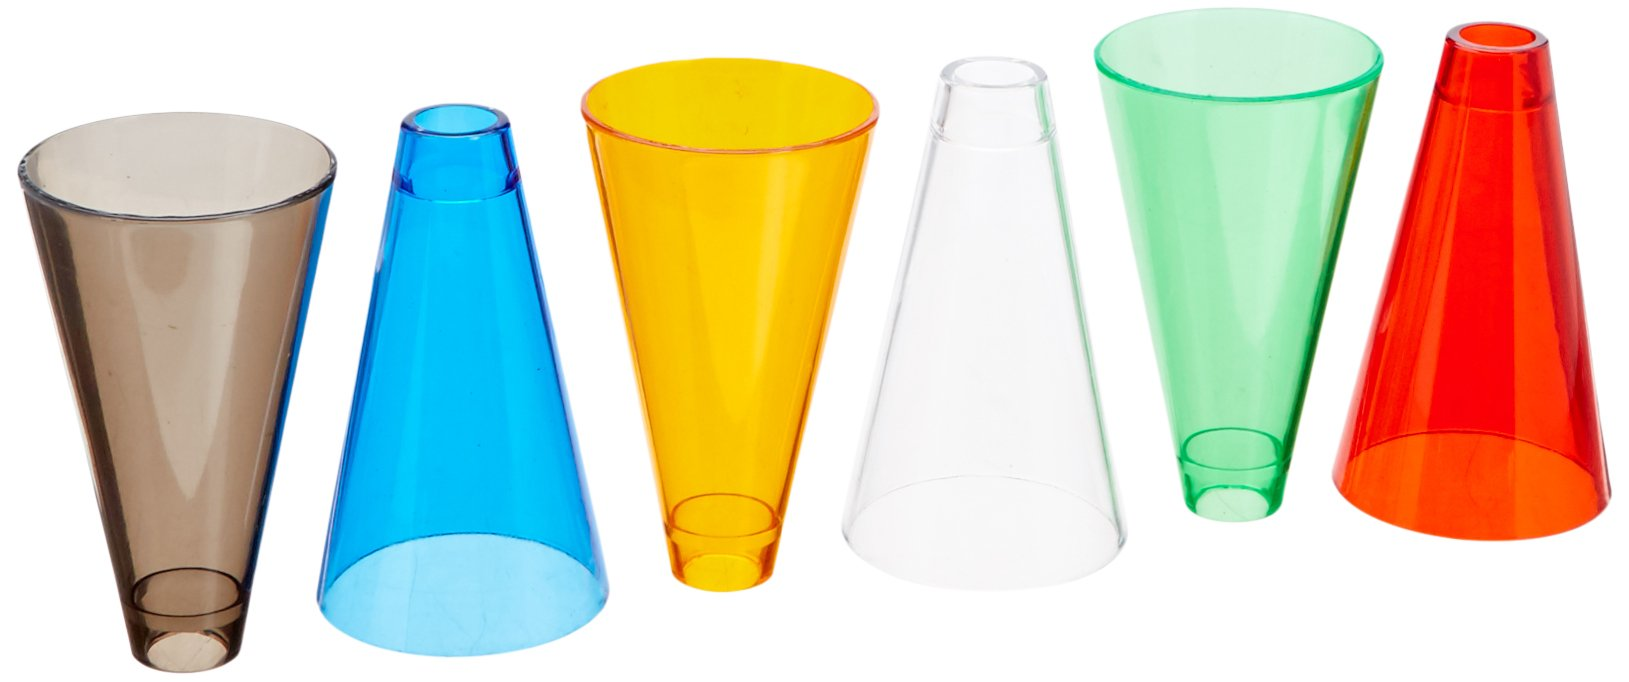 Rolyan Stacking Cones and Wooden Base, Set of 30 Activity Cones with Acrylic Colors and Base for Exercises for Occupational Therapy, Physical Therapy, Perception, and Coordination by Rolyan (Image #2)